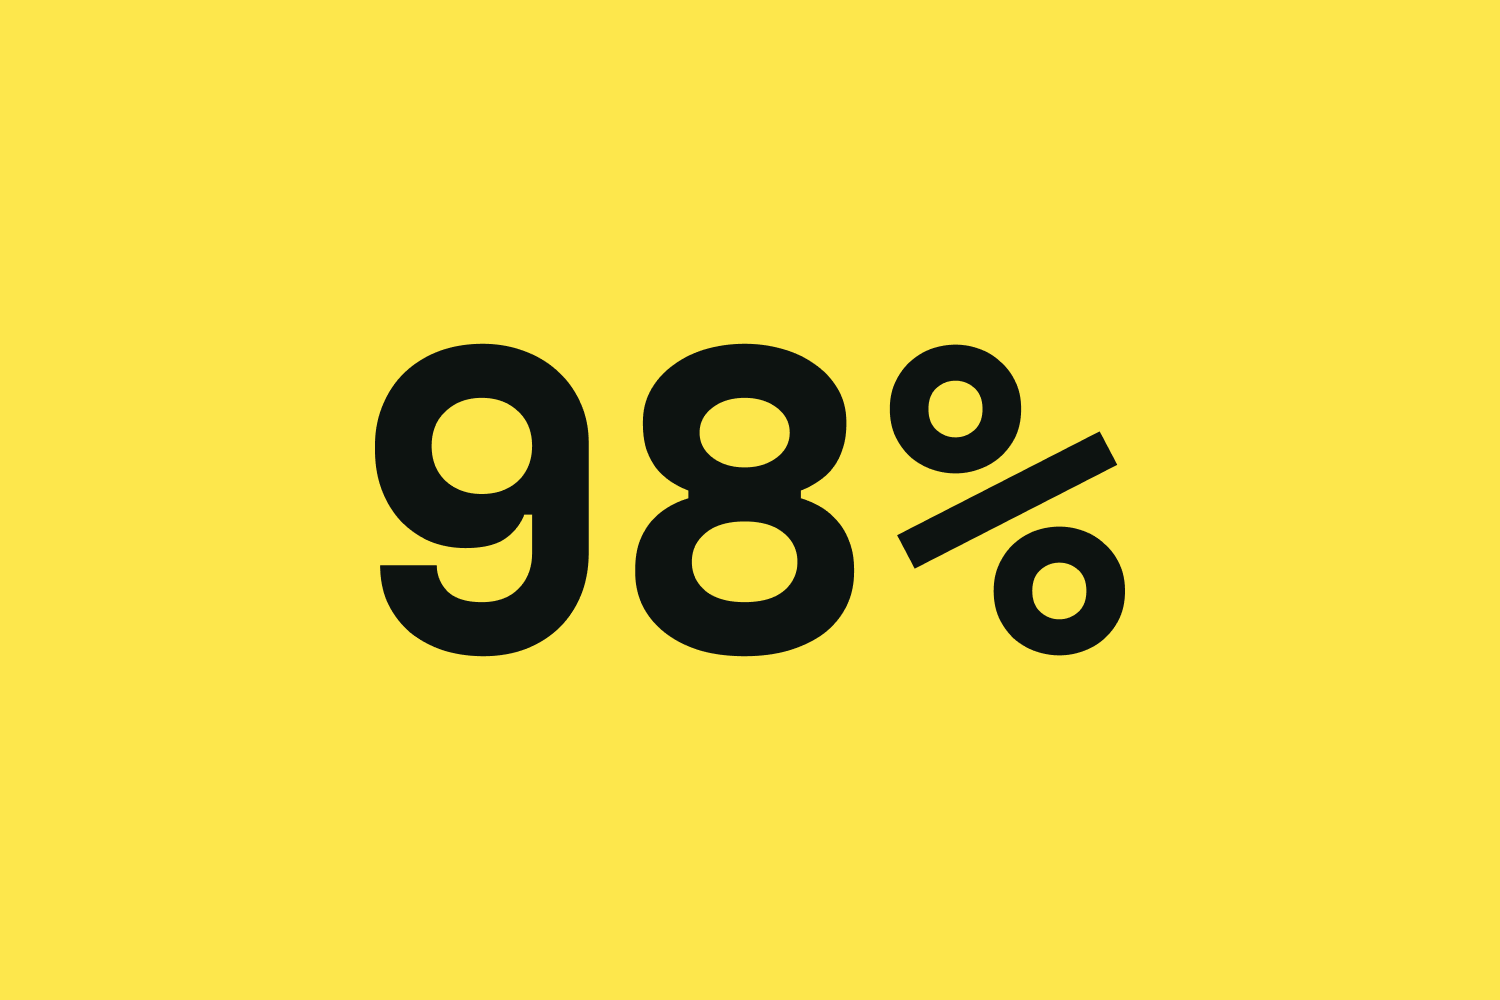 98% of artists didn't get on Spotify's playlists